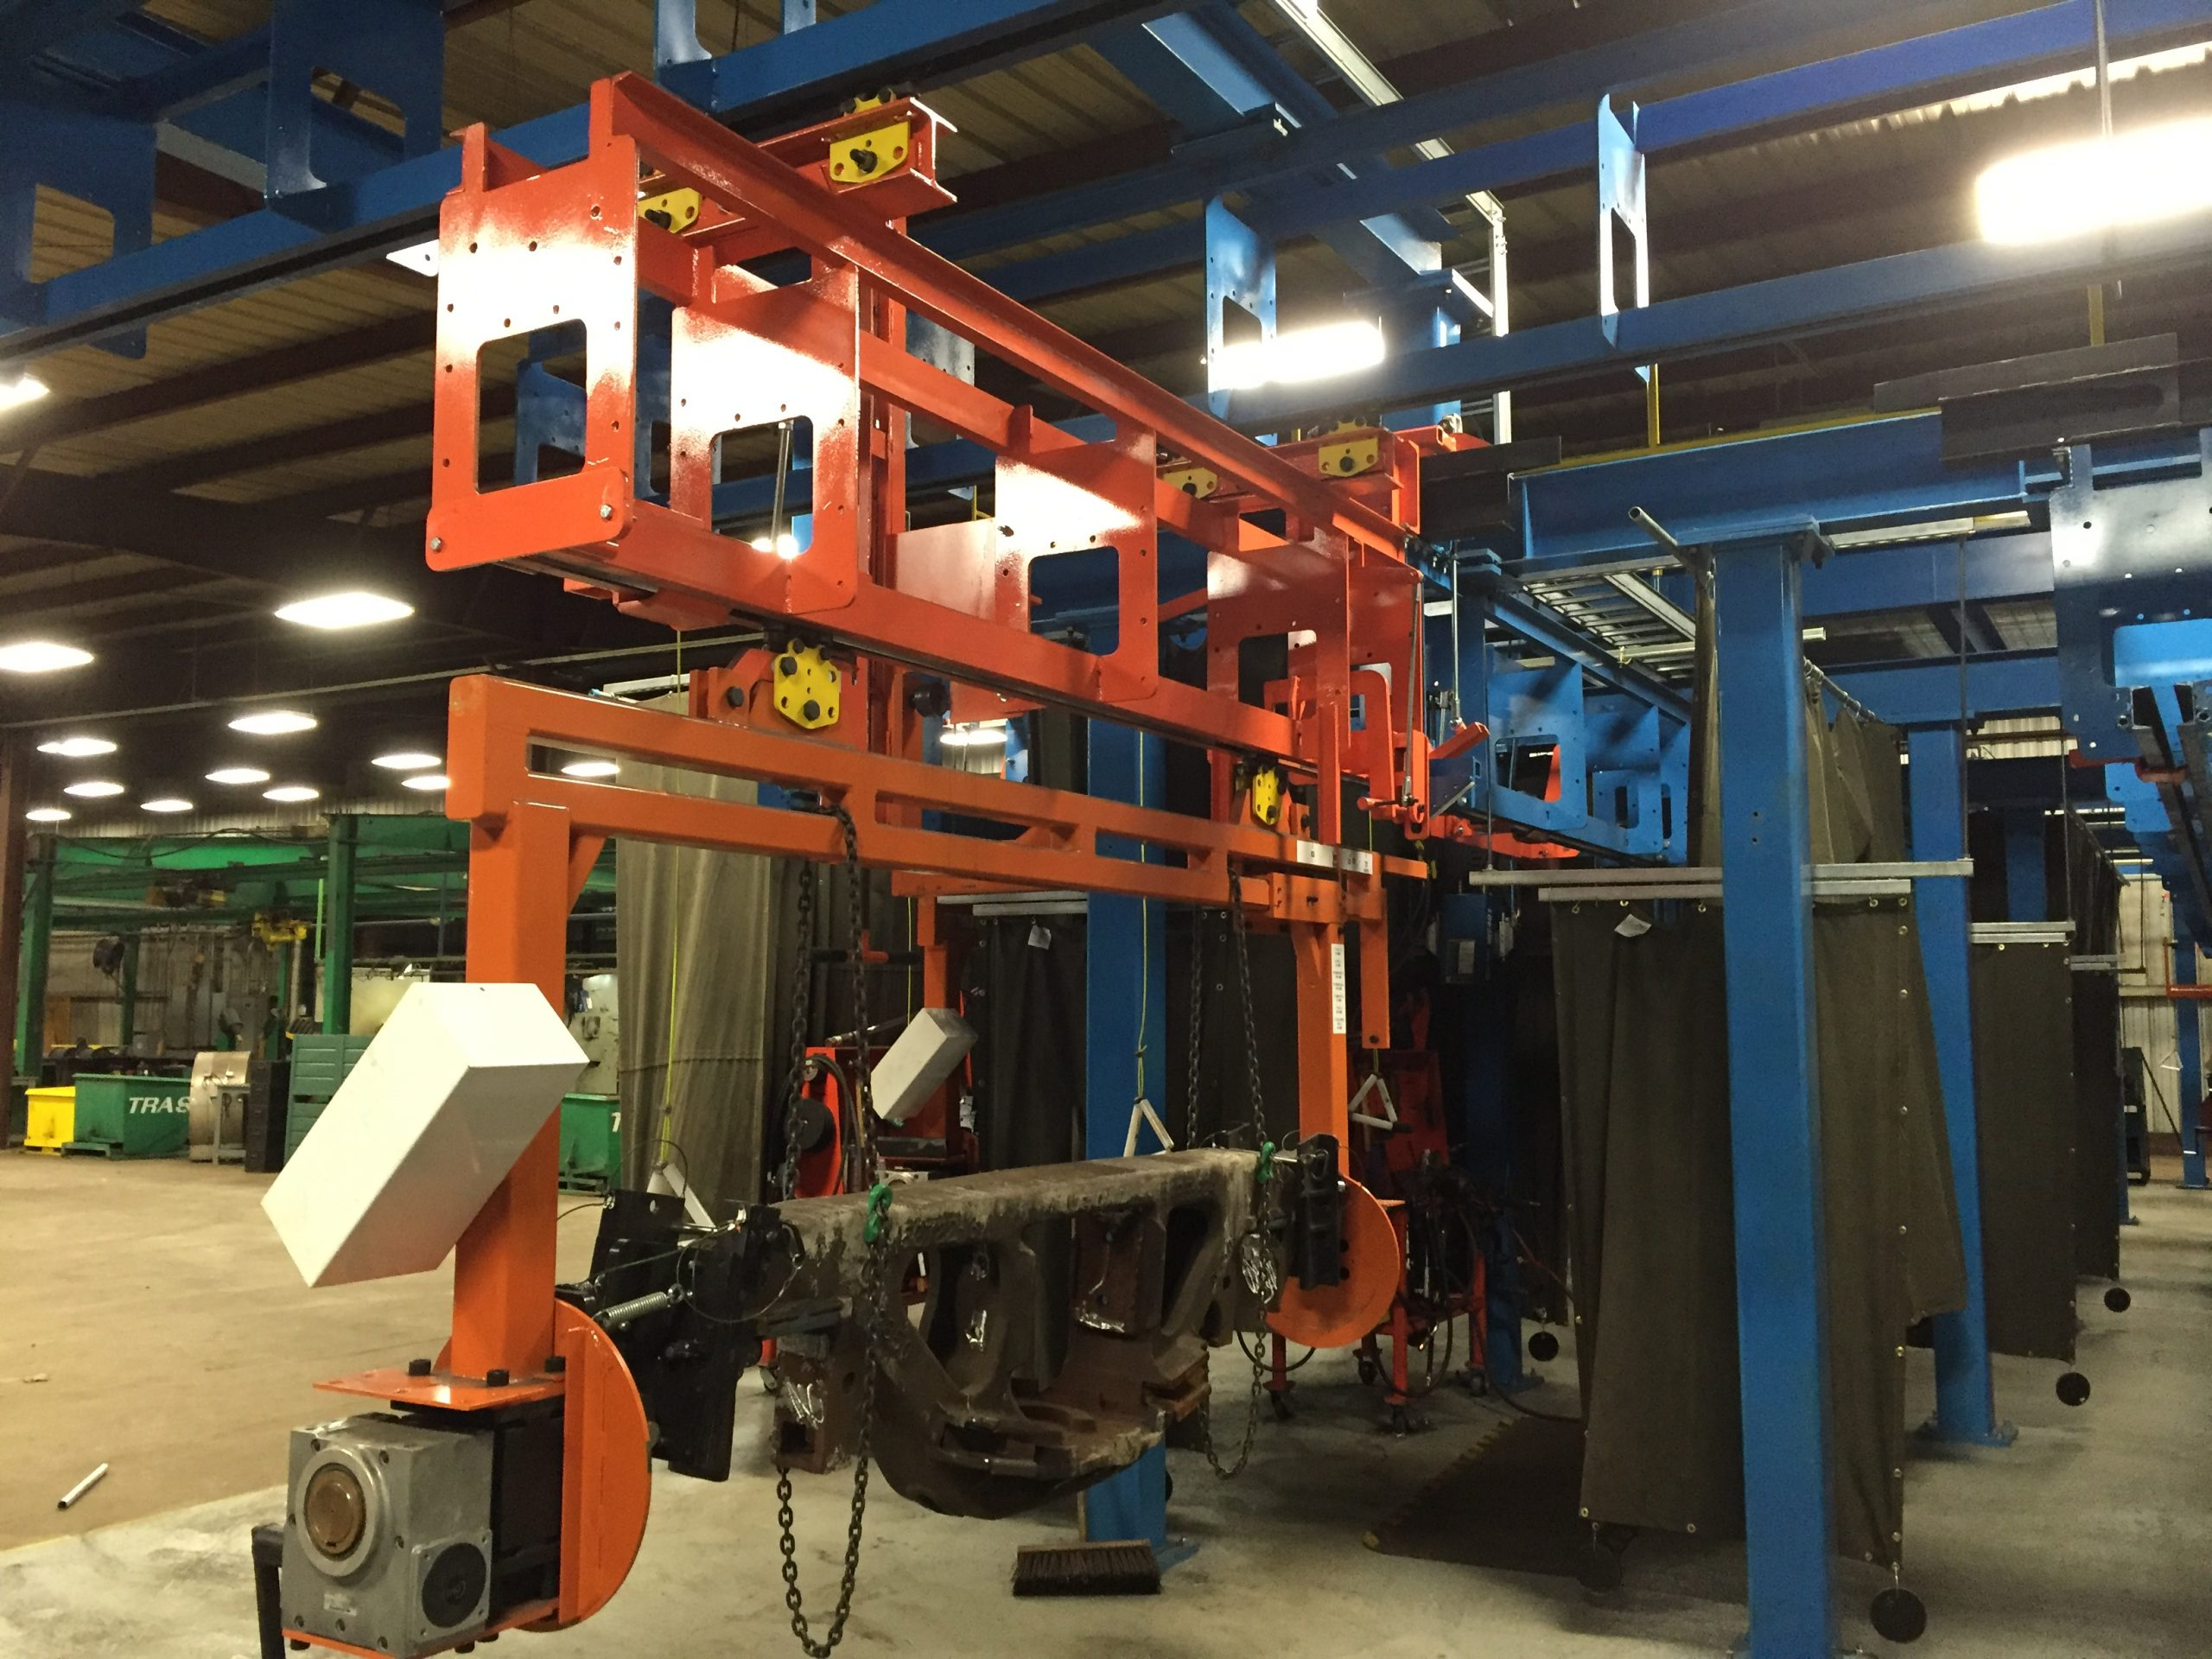 IntelliTrak 1500 Series Overhead Conveyor - Railroad Car Remanufacturing Line